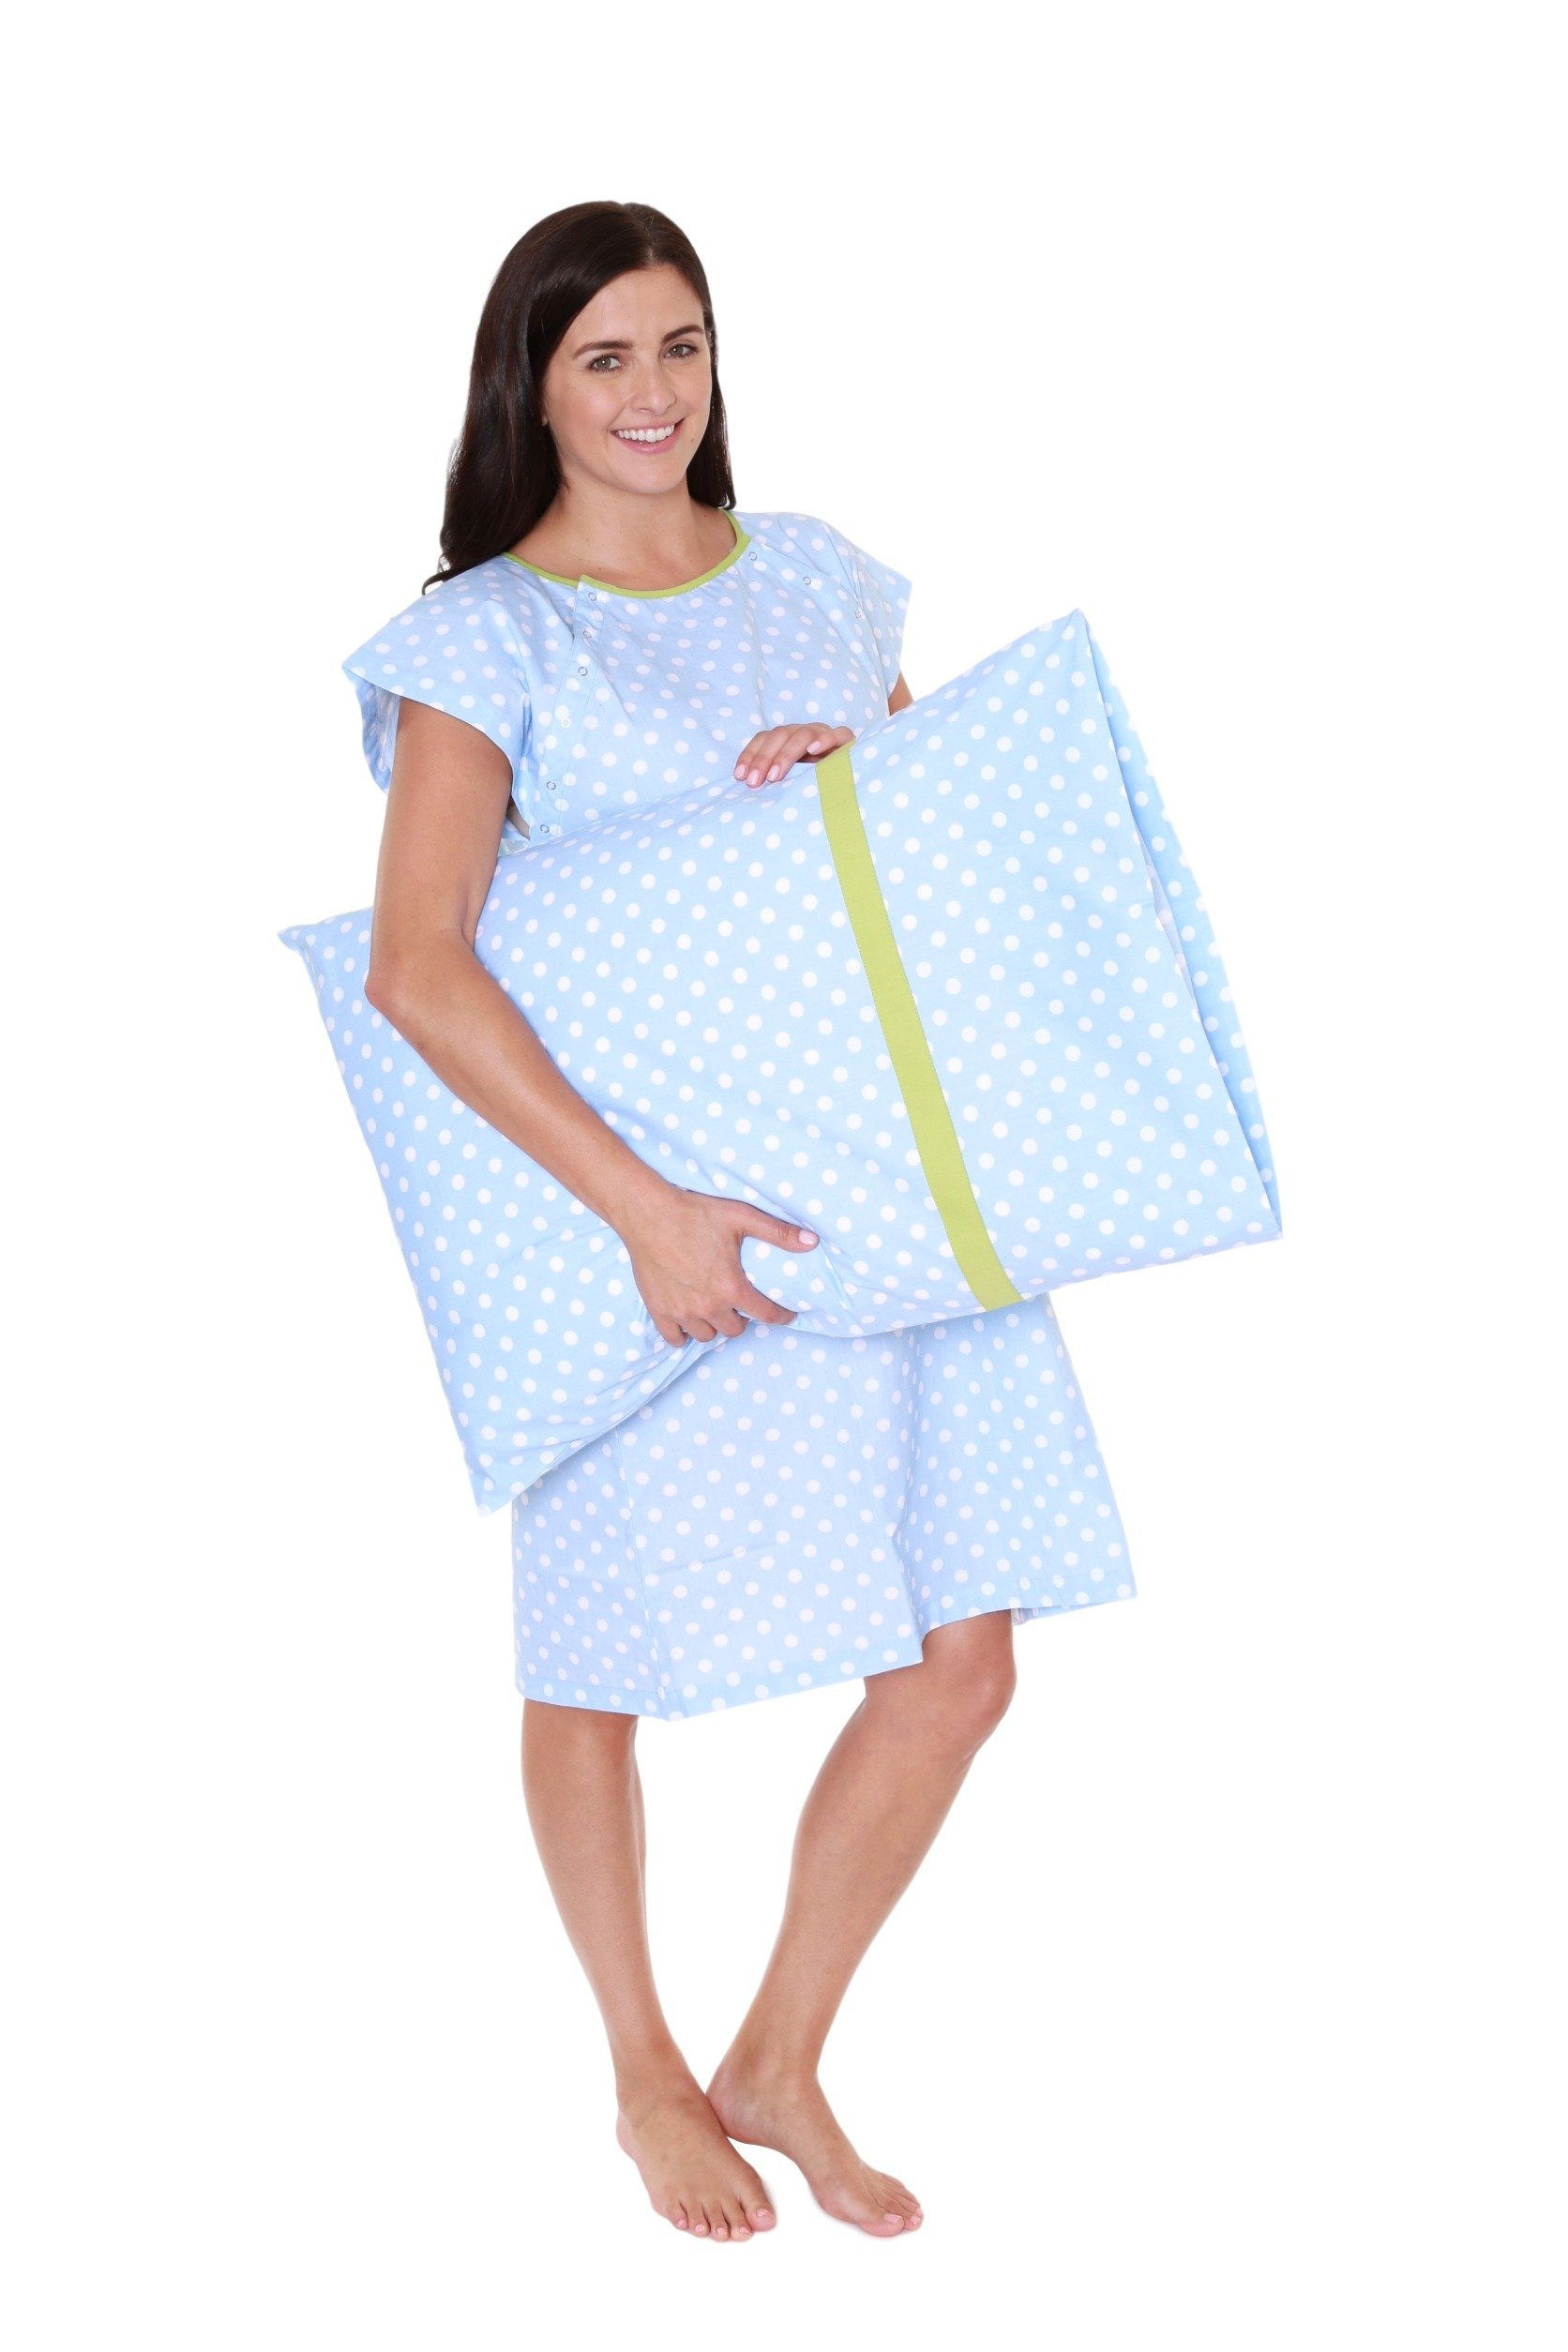 Gownies - Designer Hospital Gown Labor Kit (Small/Medium prepregnancy 0-10, Nicole Gownie with matching pillow case)